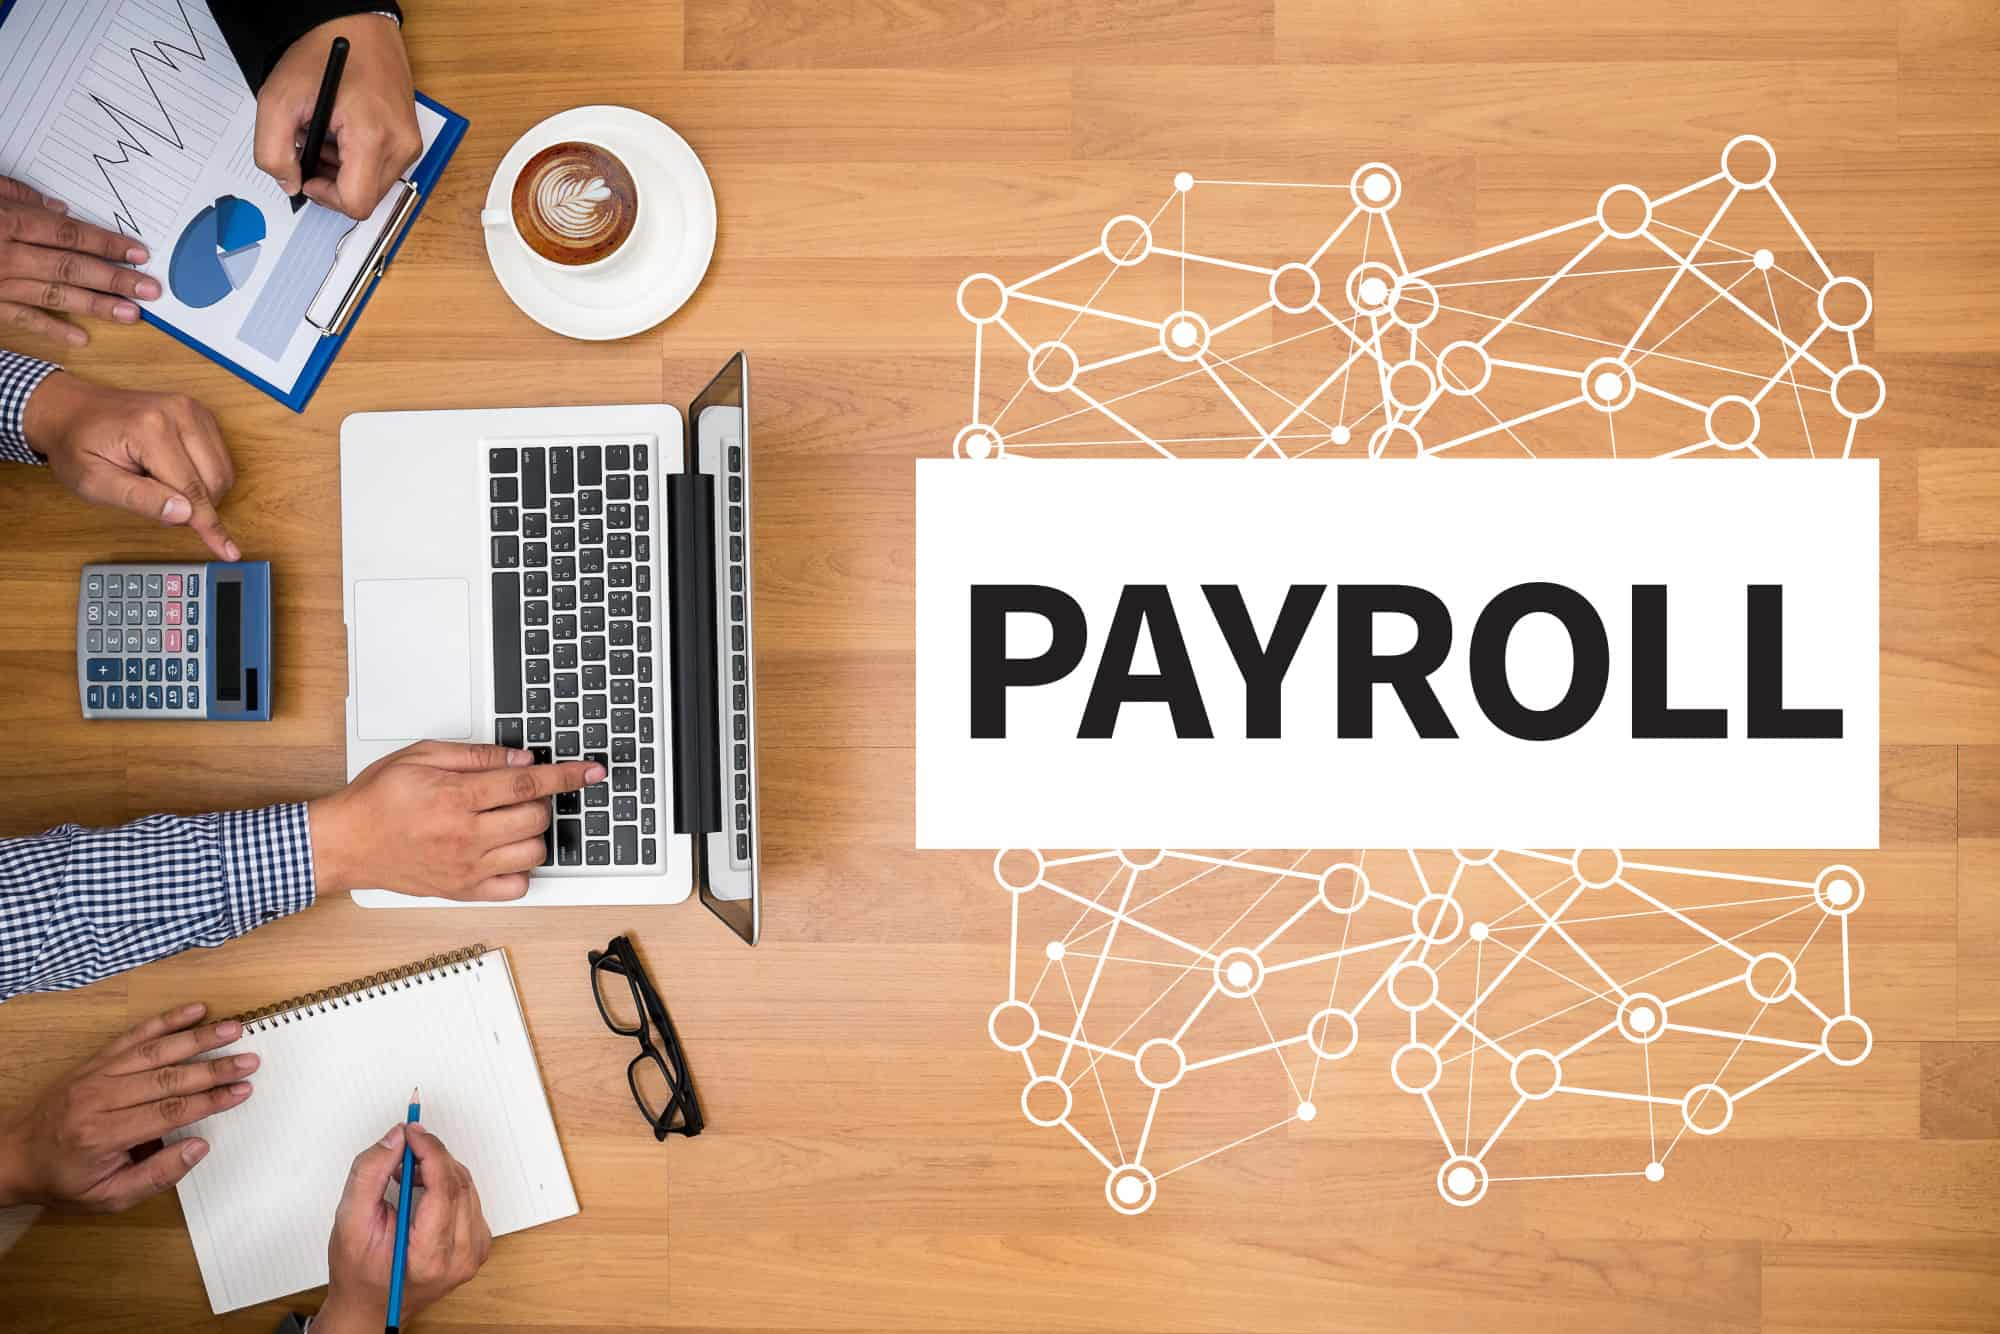 PAYROLL Business team hands at work with financial reports and a laptop